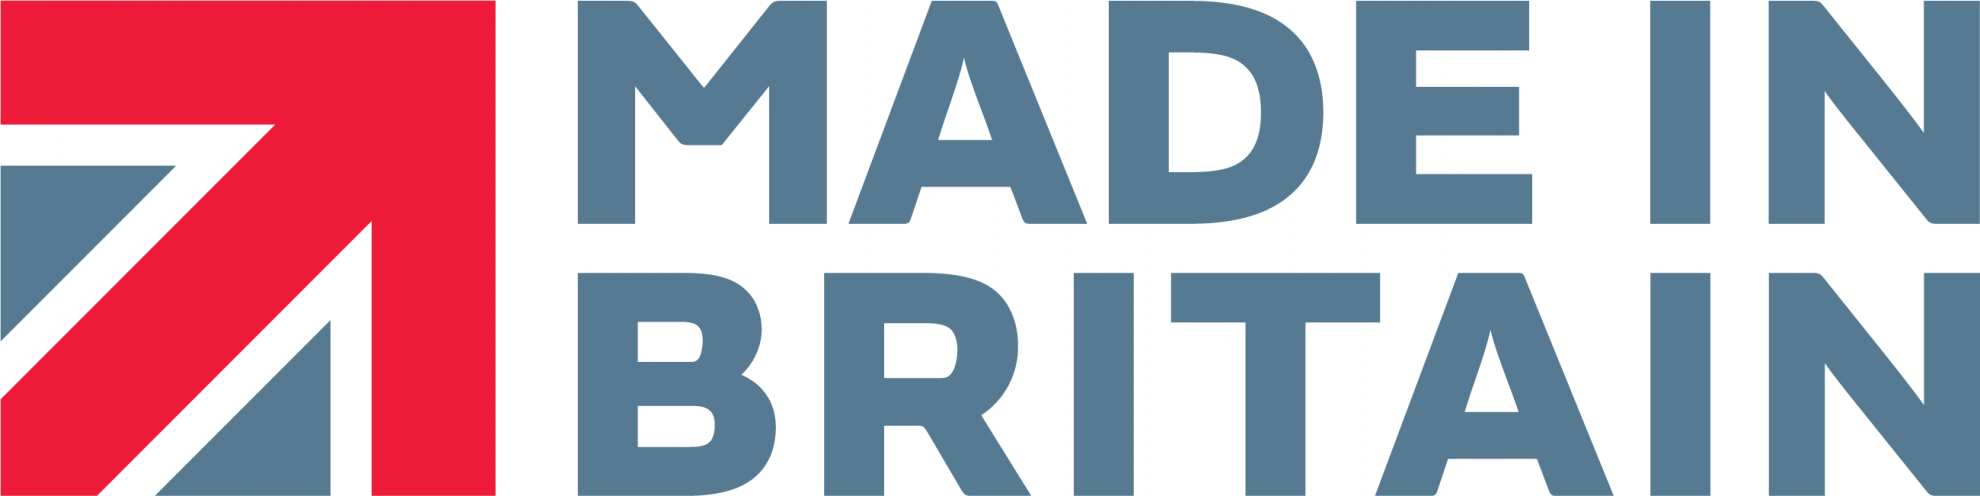 Made in Britain (logo symbol)